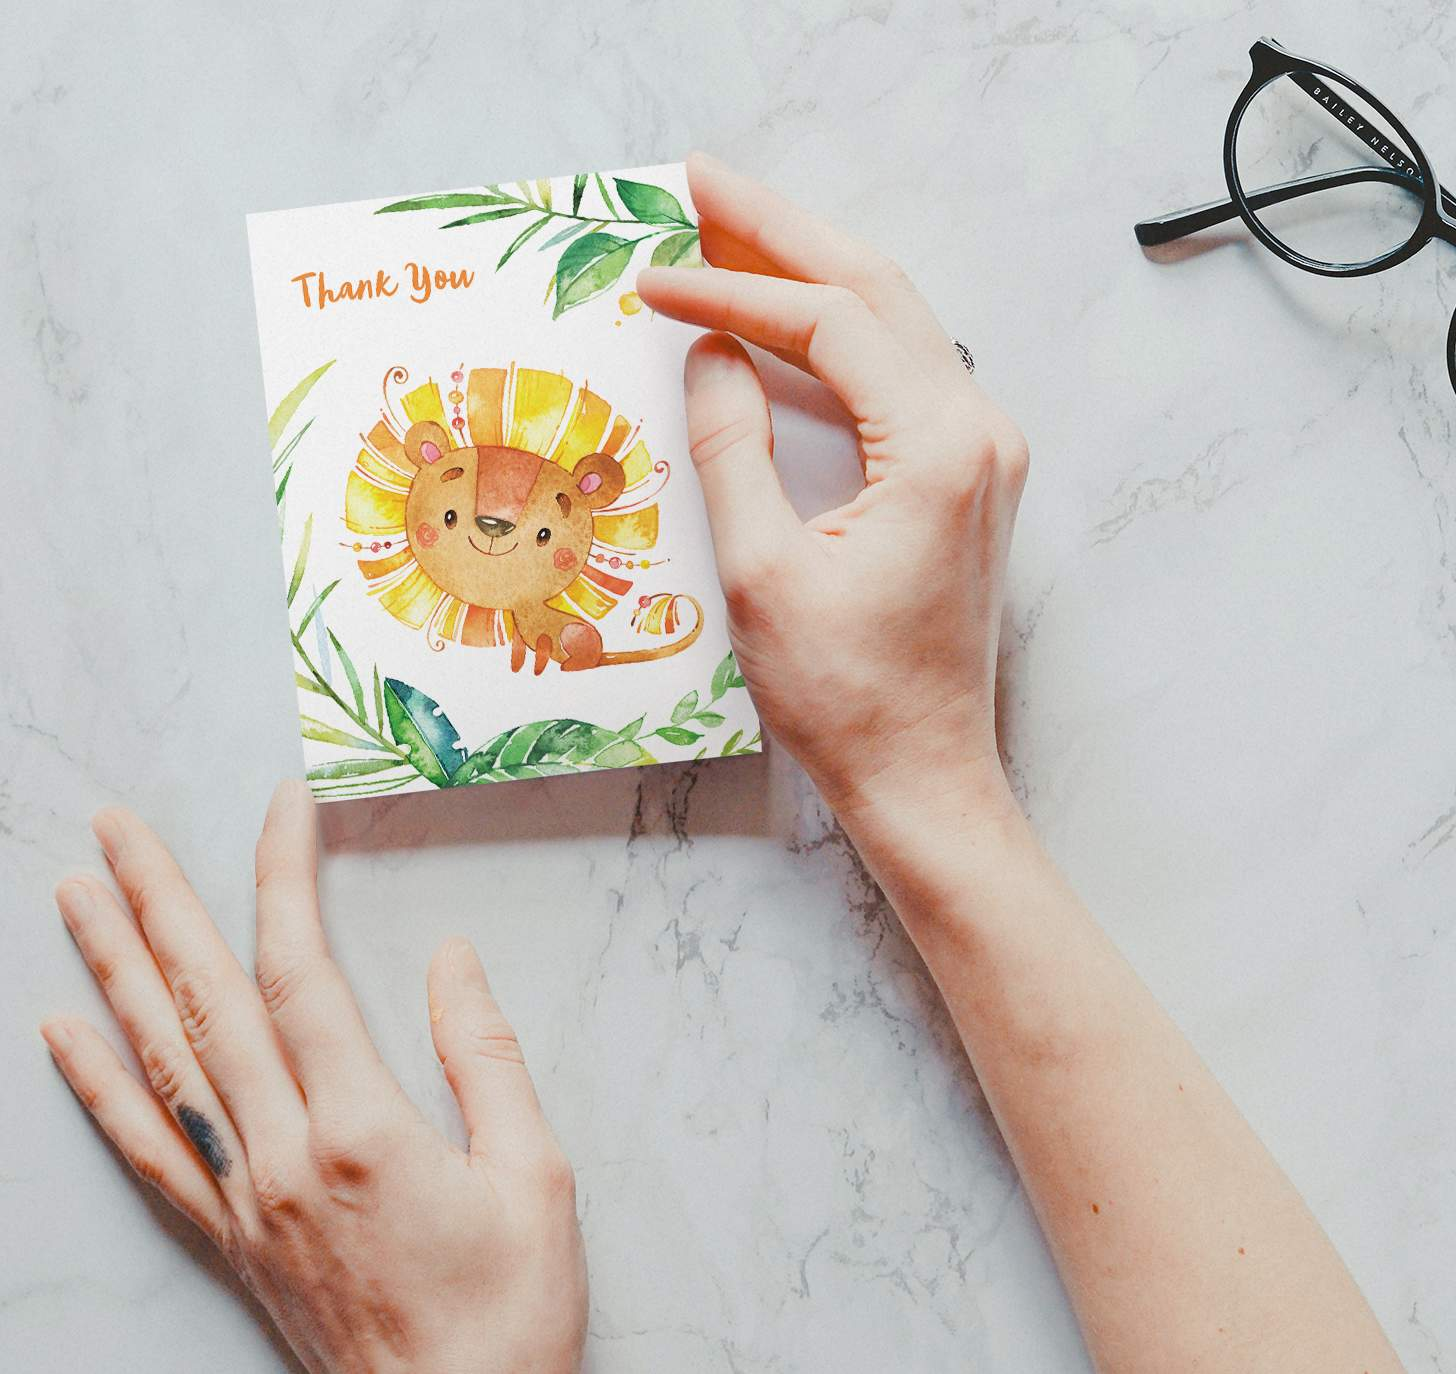 Woman's hands holding card with a cute orange and yellow lion and plants design on a marble background